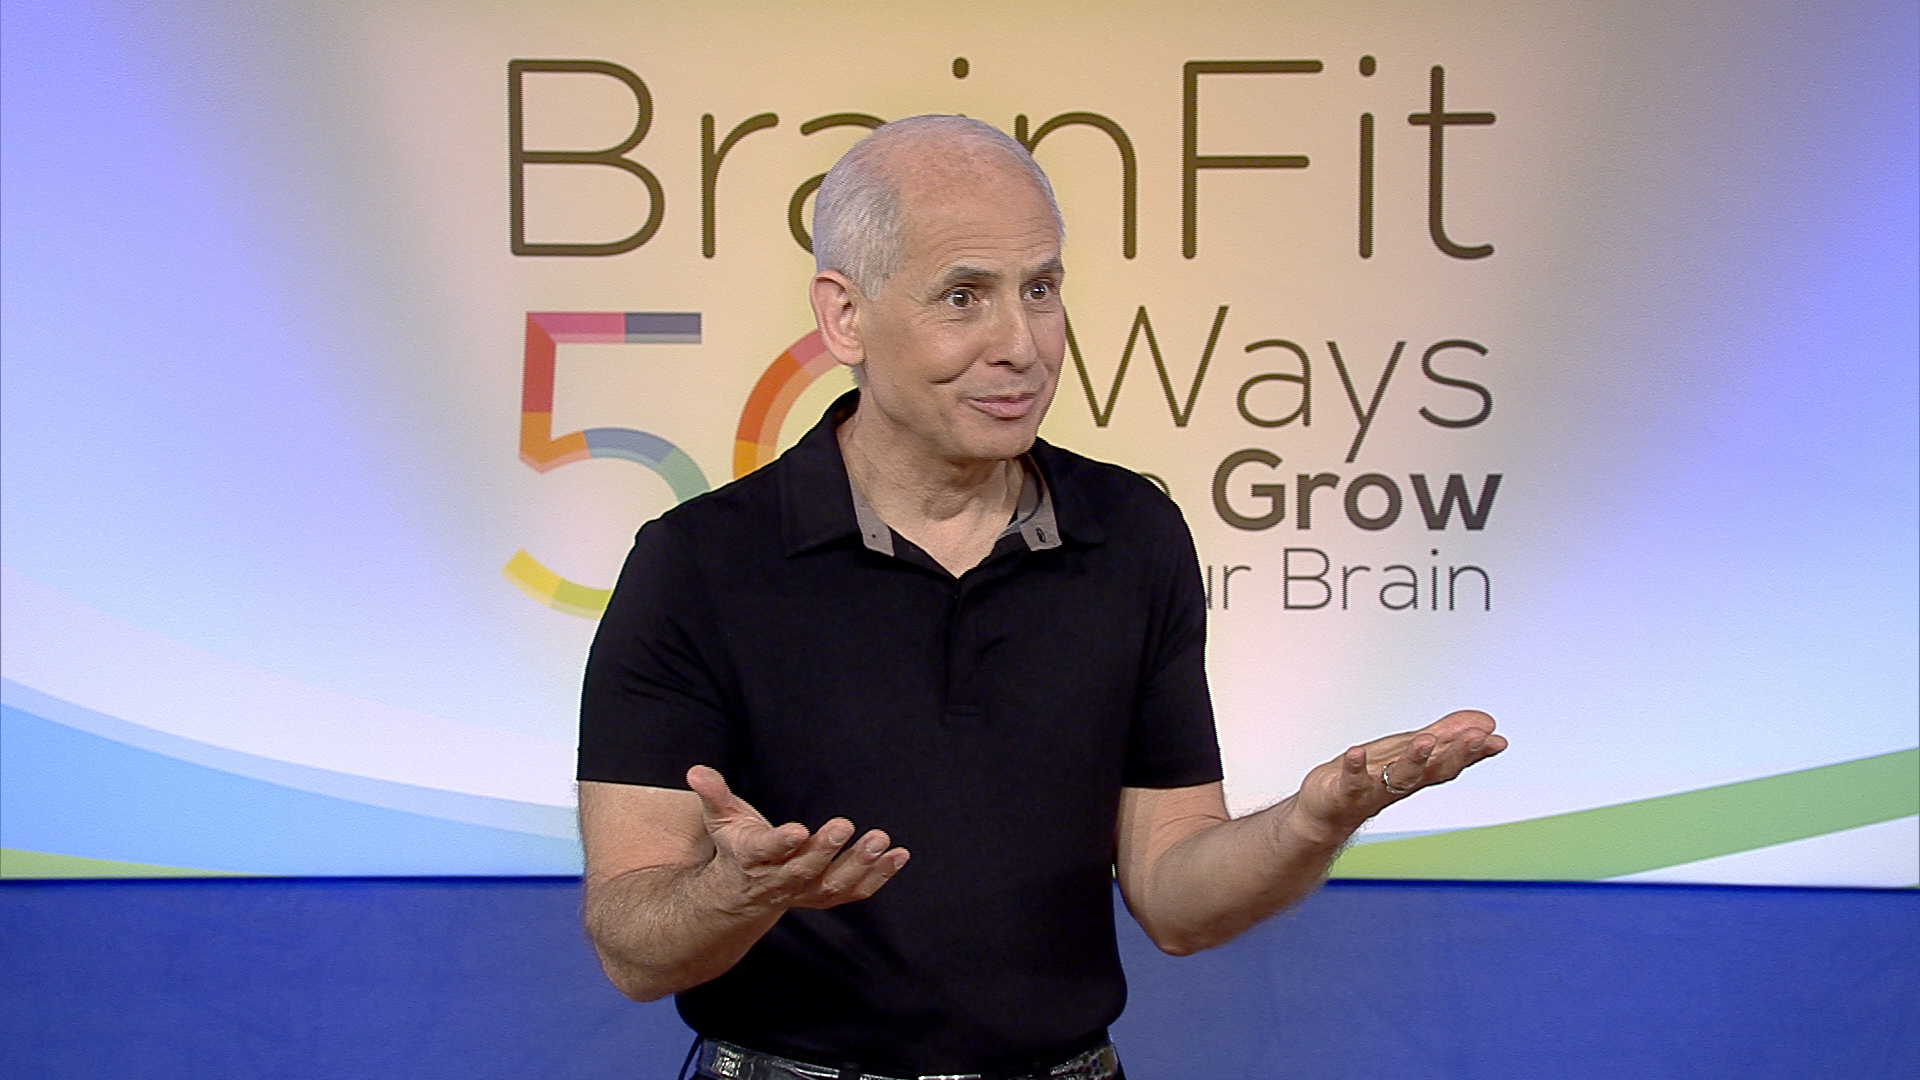 Brainfit 50 With Dr. Daniel Amen, MD and Tana Amen, RN